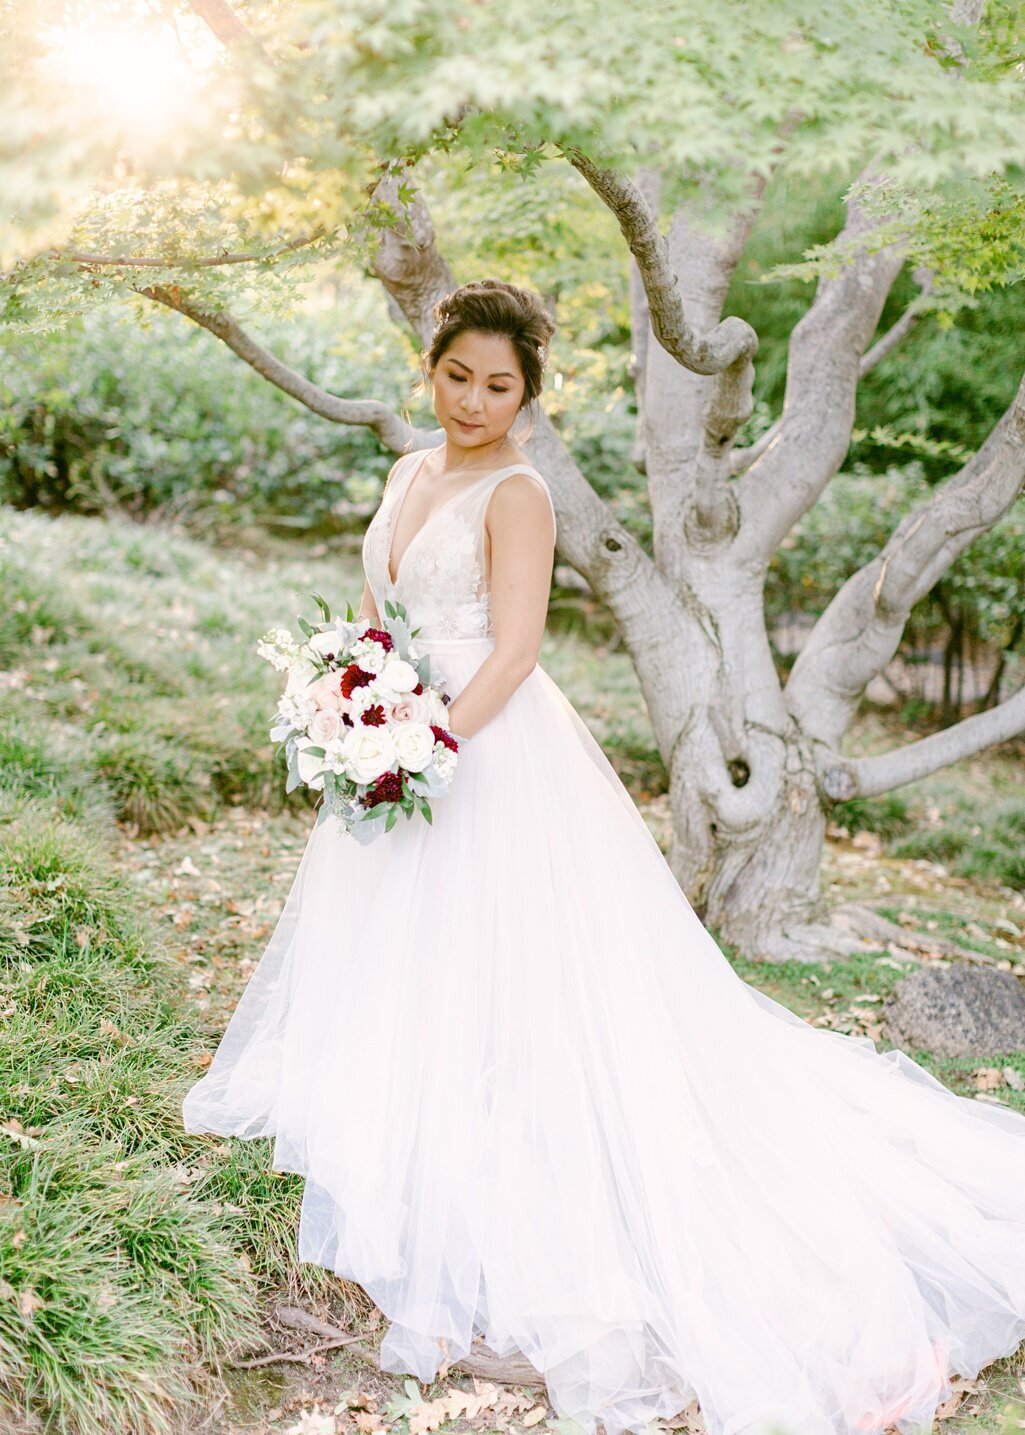 Jessie-Barksdale-Photography_Hakone-Gardens-Saratoga_San-Francisco-Bay-Area-Wedding-Photographer_0095